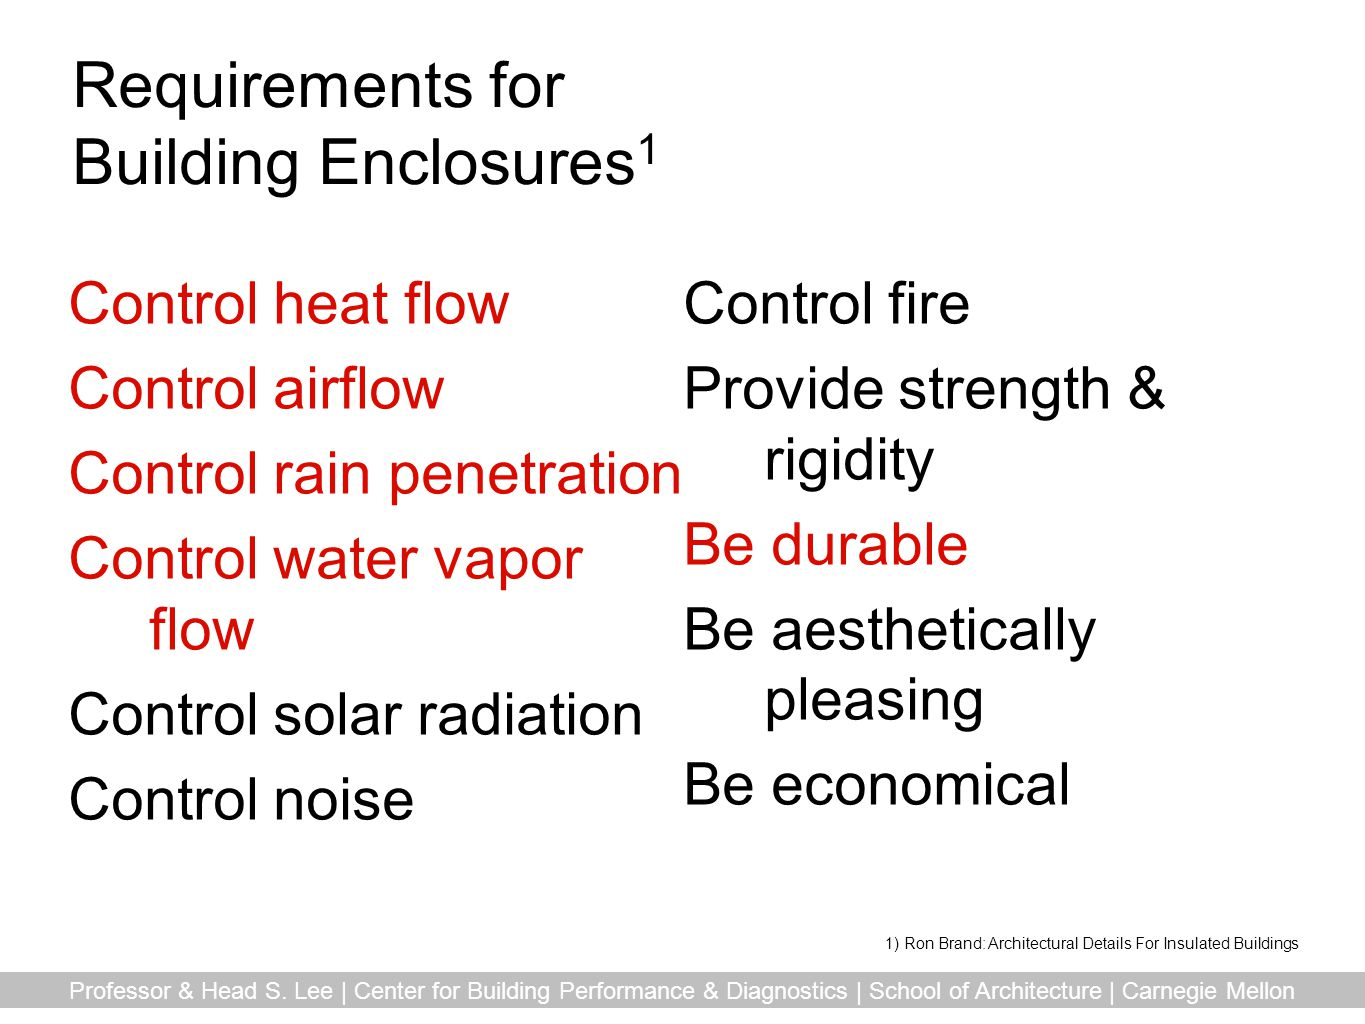 Requirements for Building Enclosures1